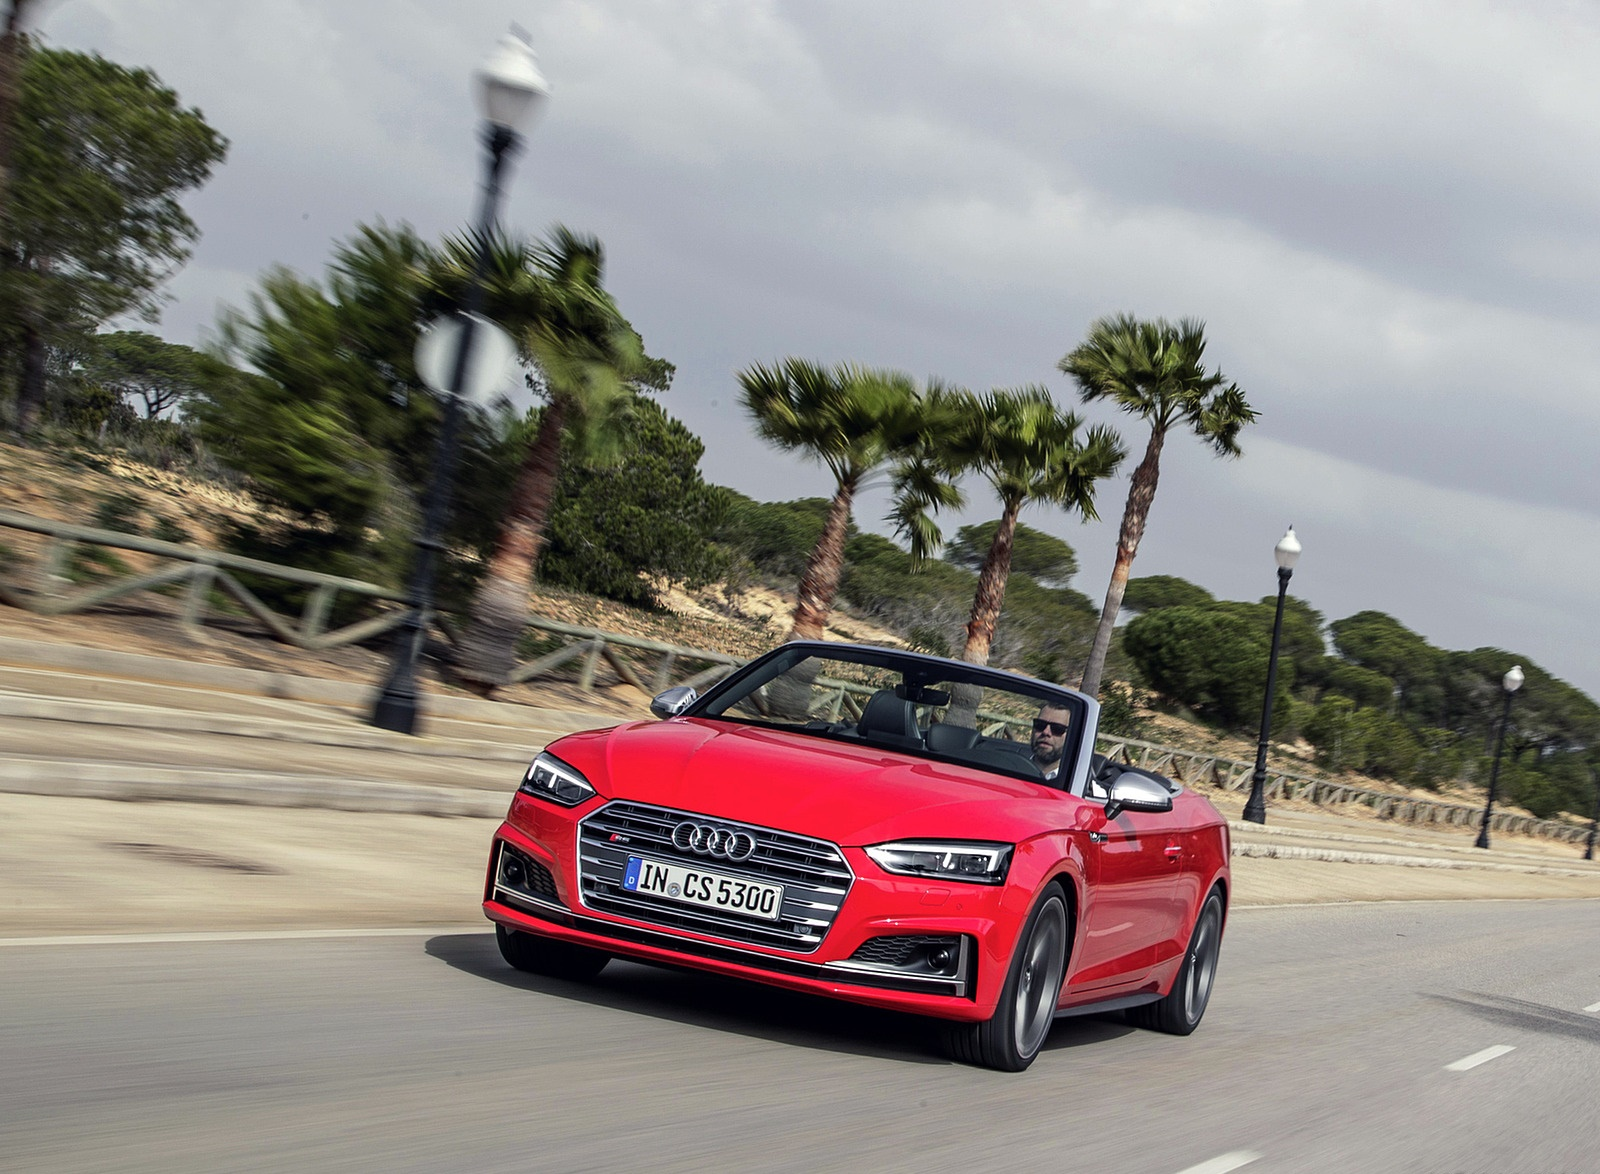 2018 Audi S5 Cabriolet (Color: Misano Red) Front Wallpaper (6)